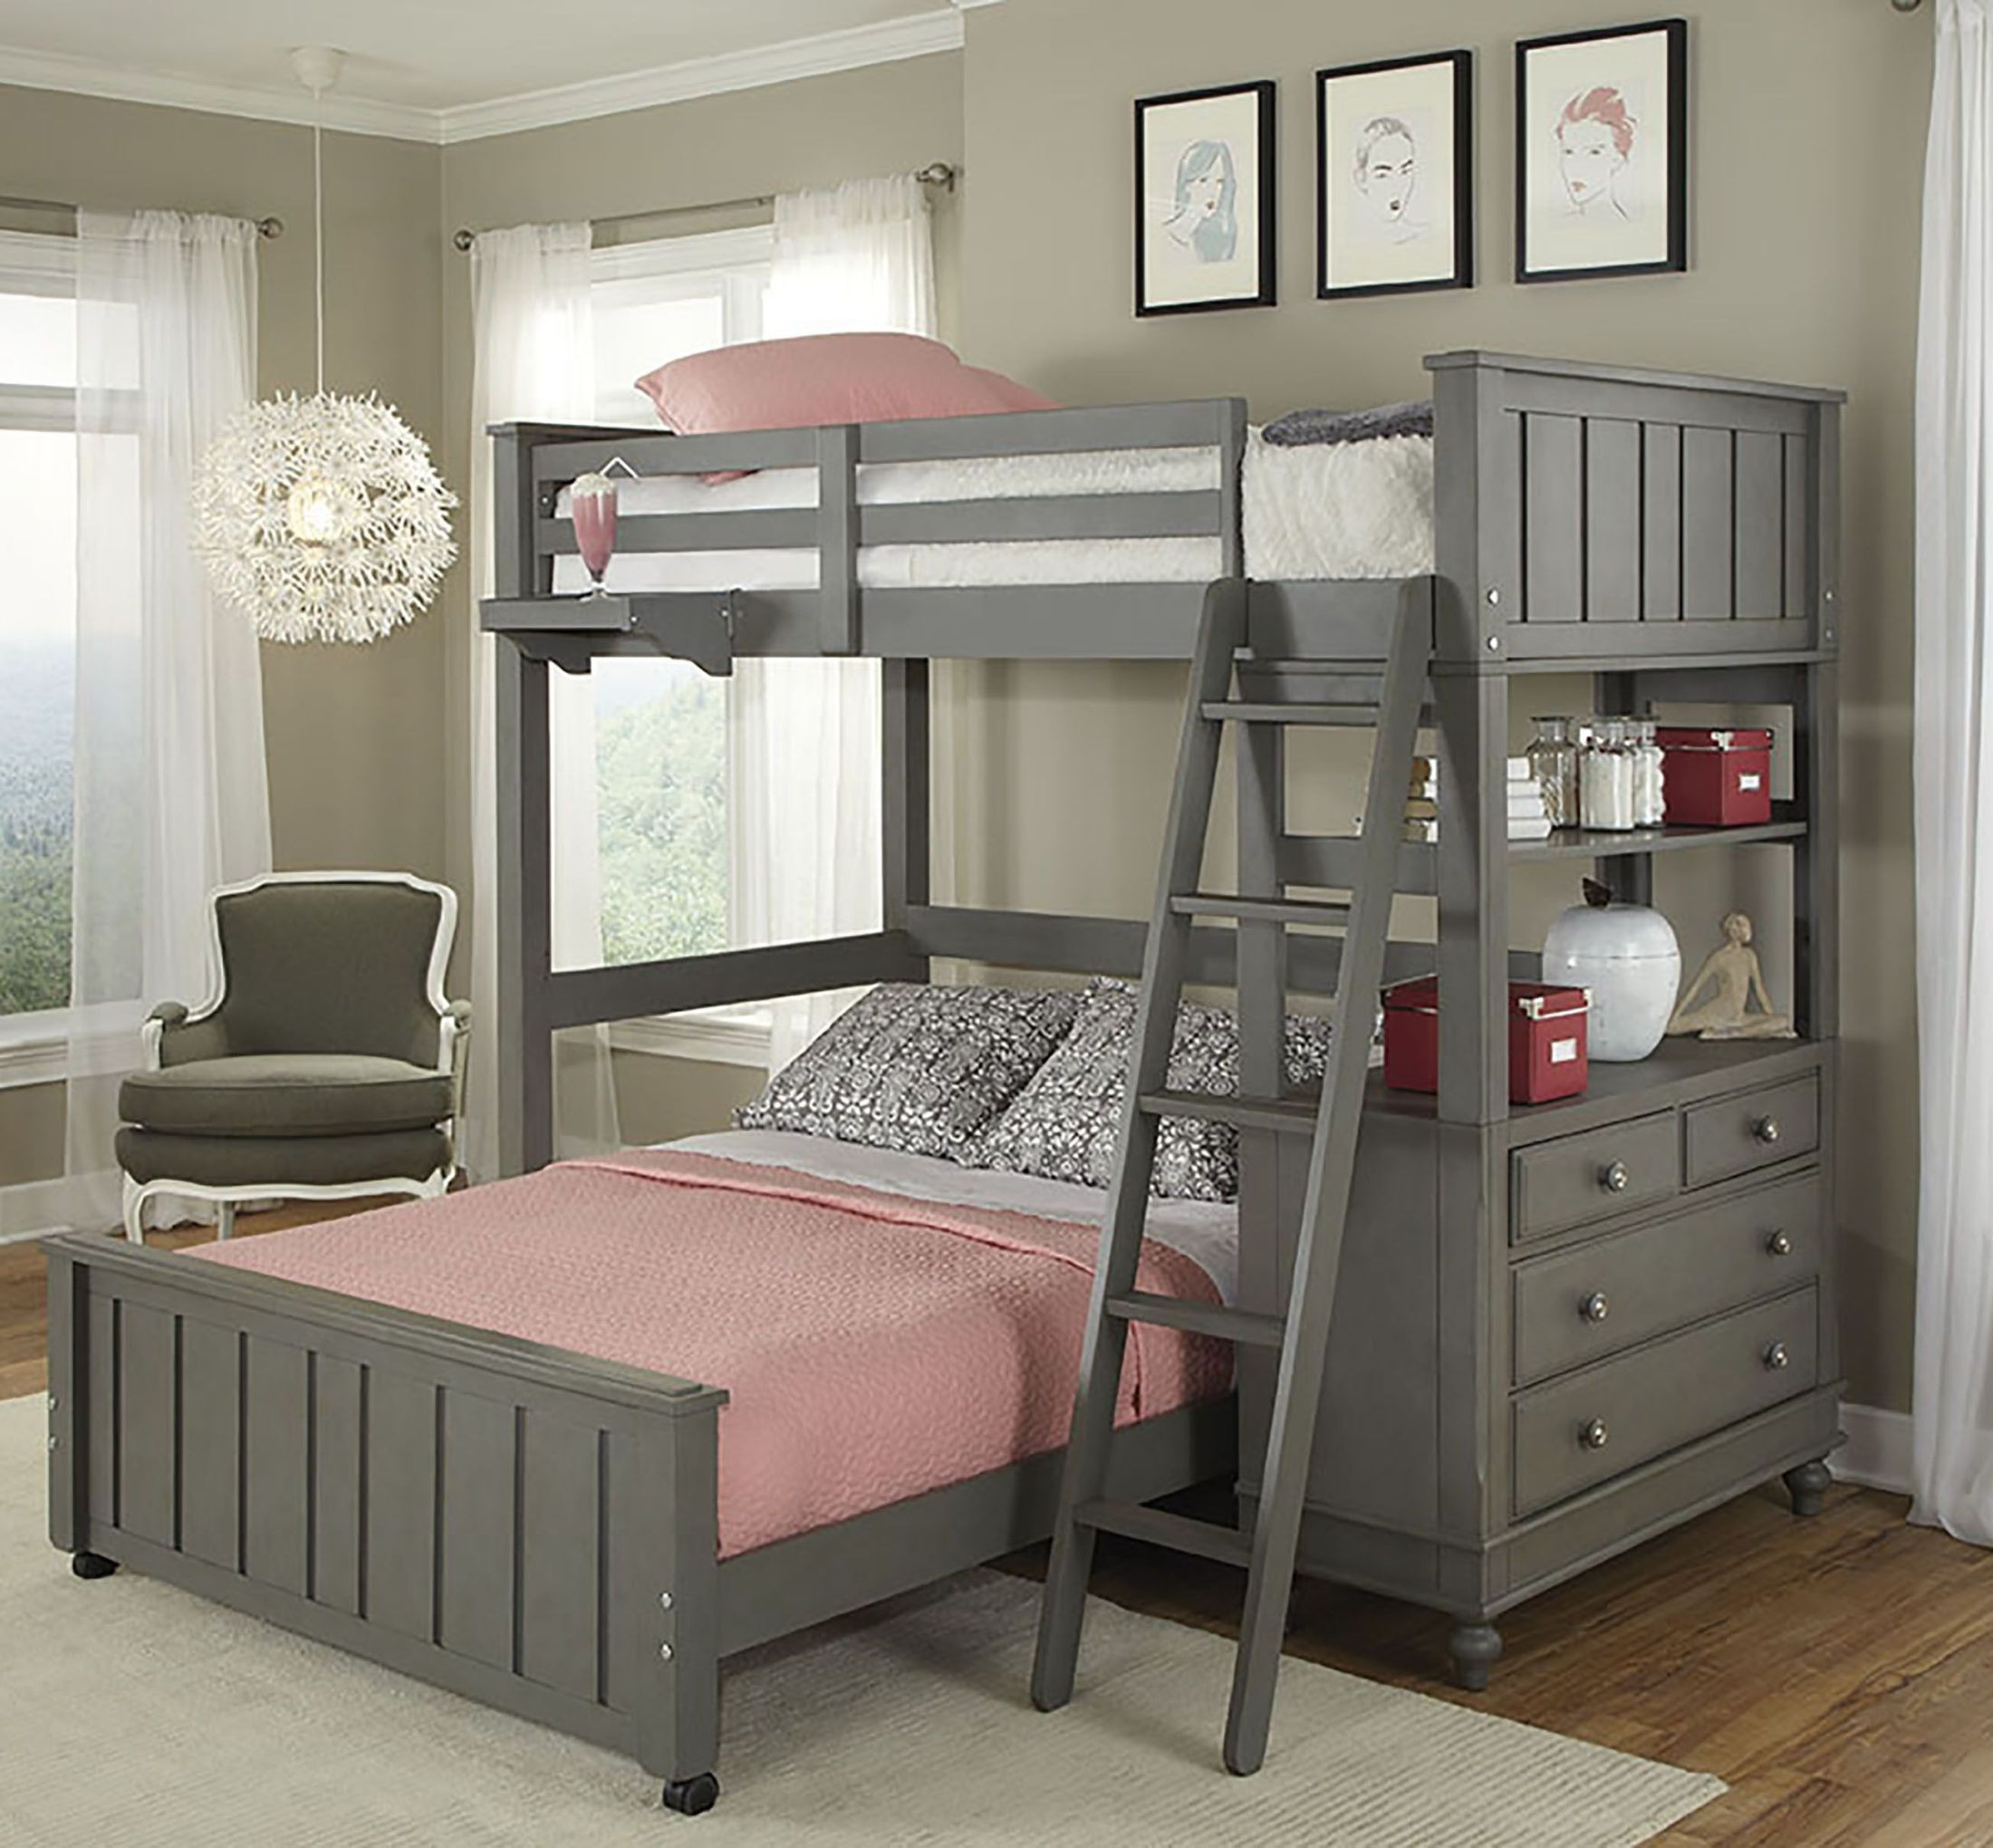 Lake house stone youth loft bedroom set with full lower for Loft net bed